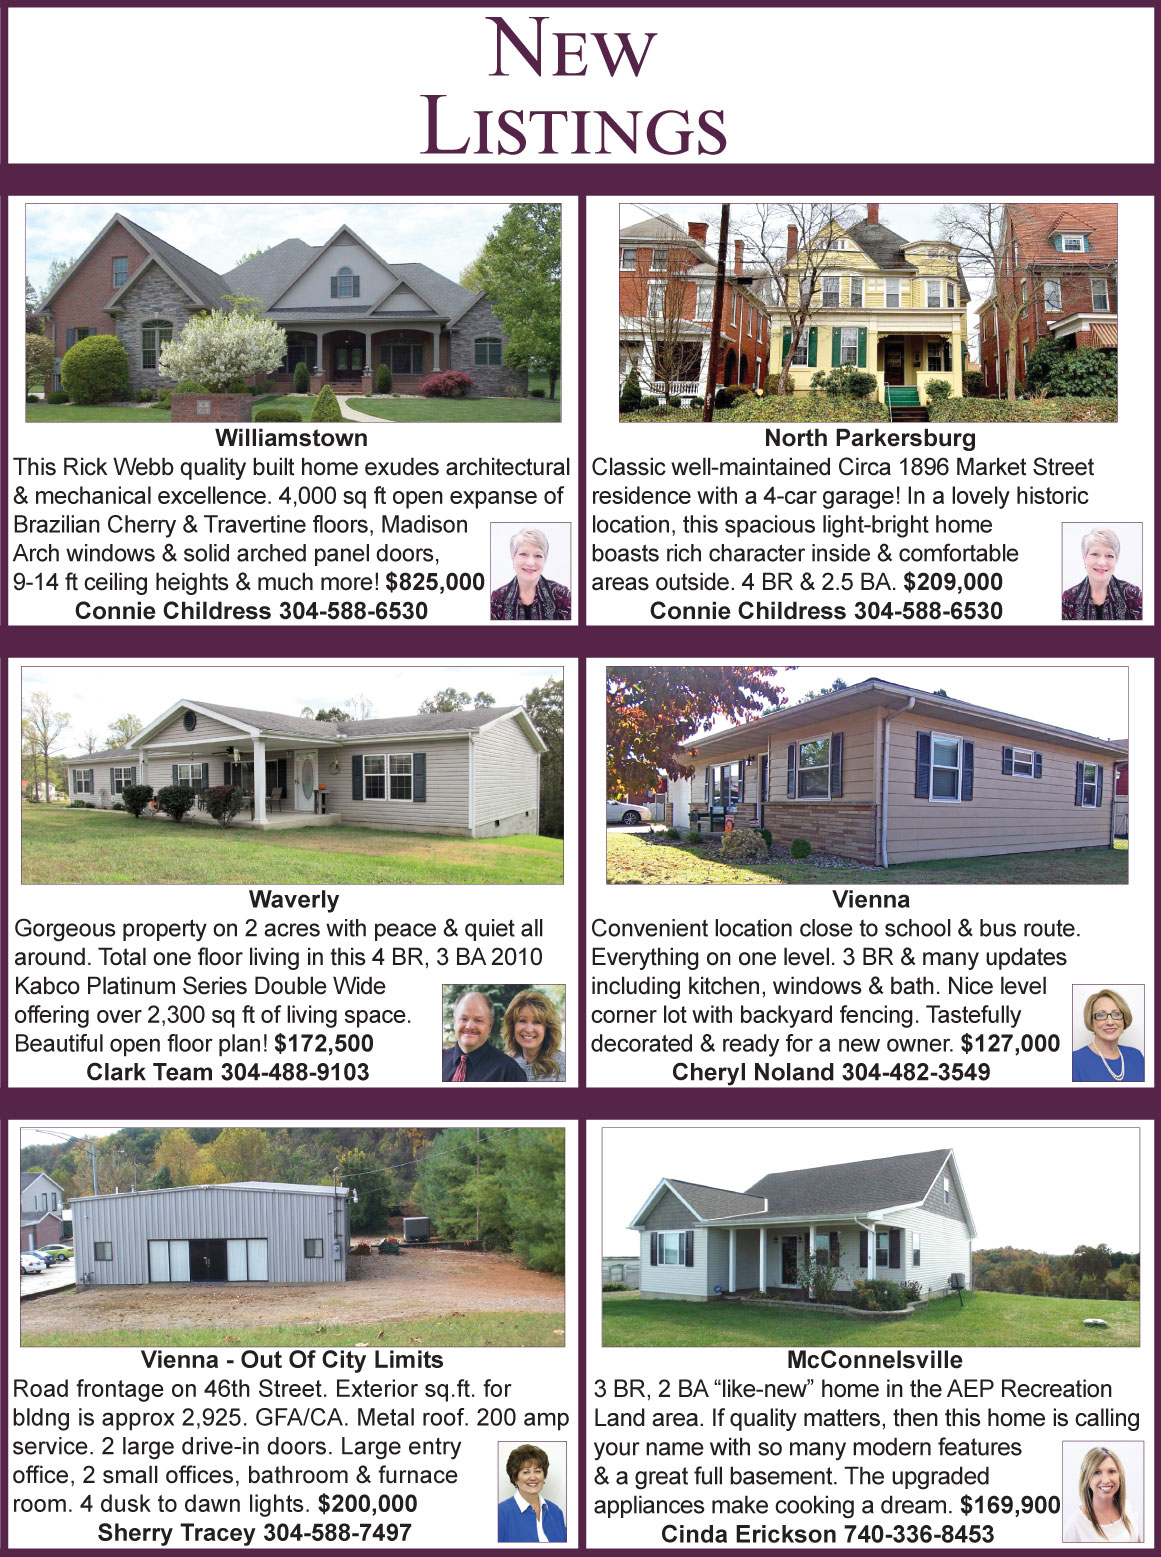 New Listings | Mid Ohio Valley | Berkshire Hathaway HomeServices